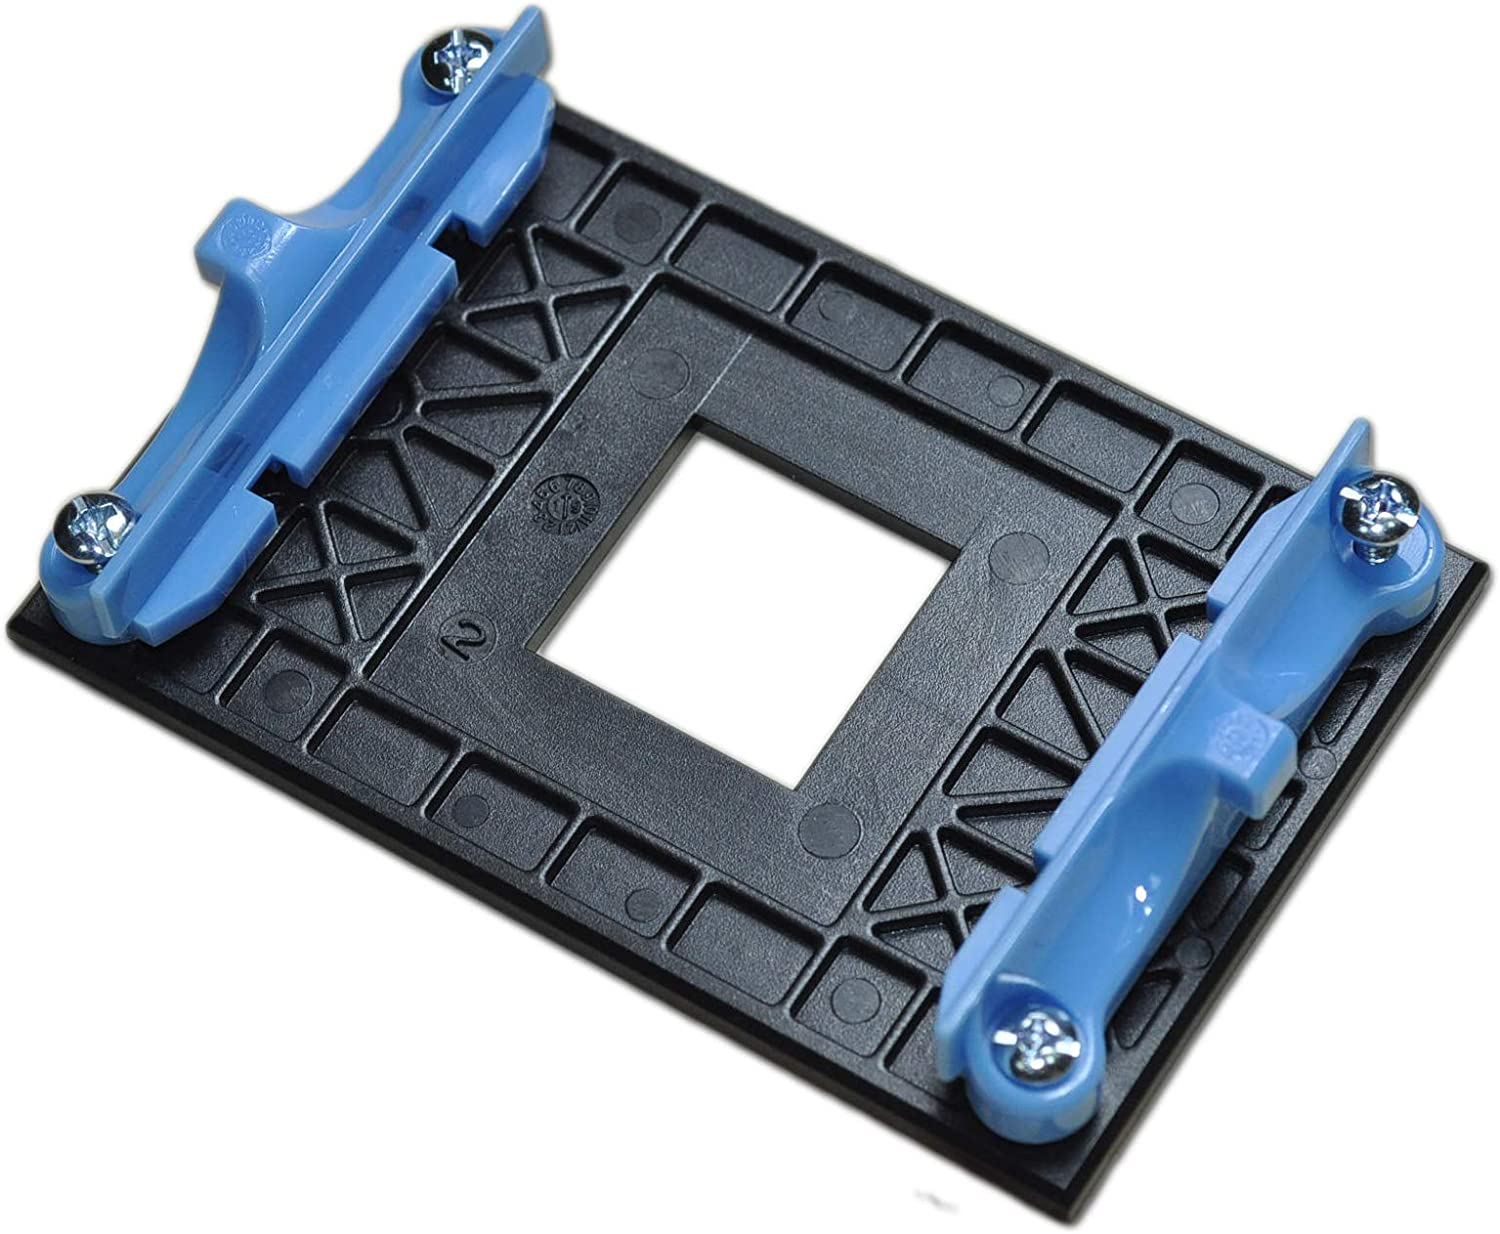 AM4 Retention Bracket & AM4 Back Plate (for AM4's Heat Sink Cooling Fan Mounting) -Blue